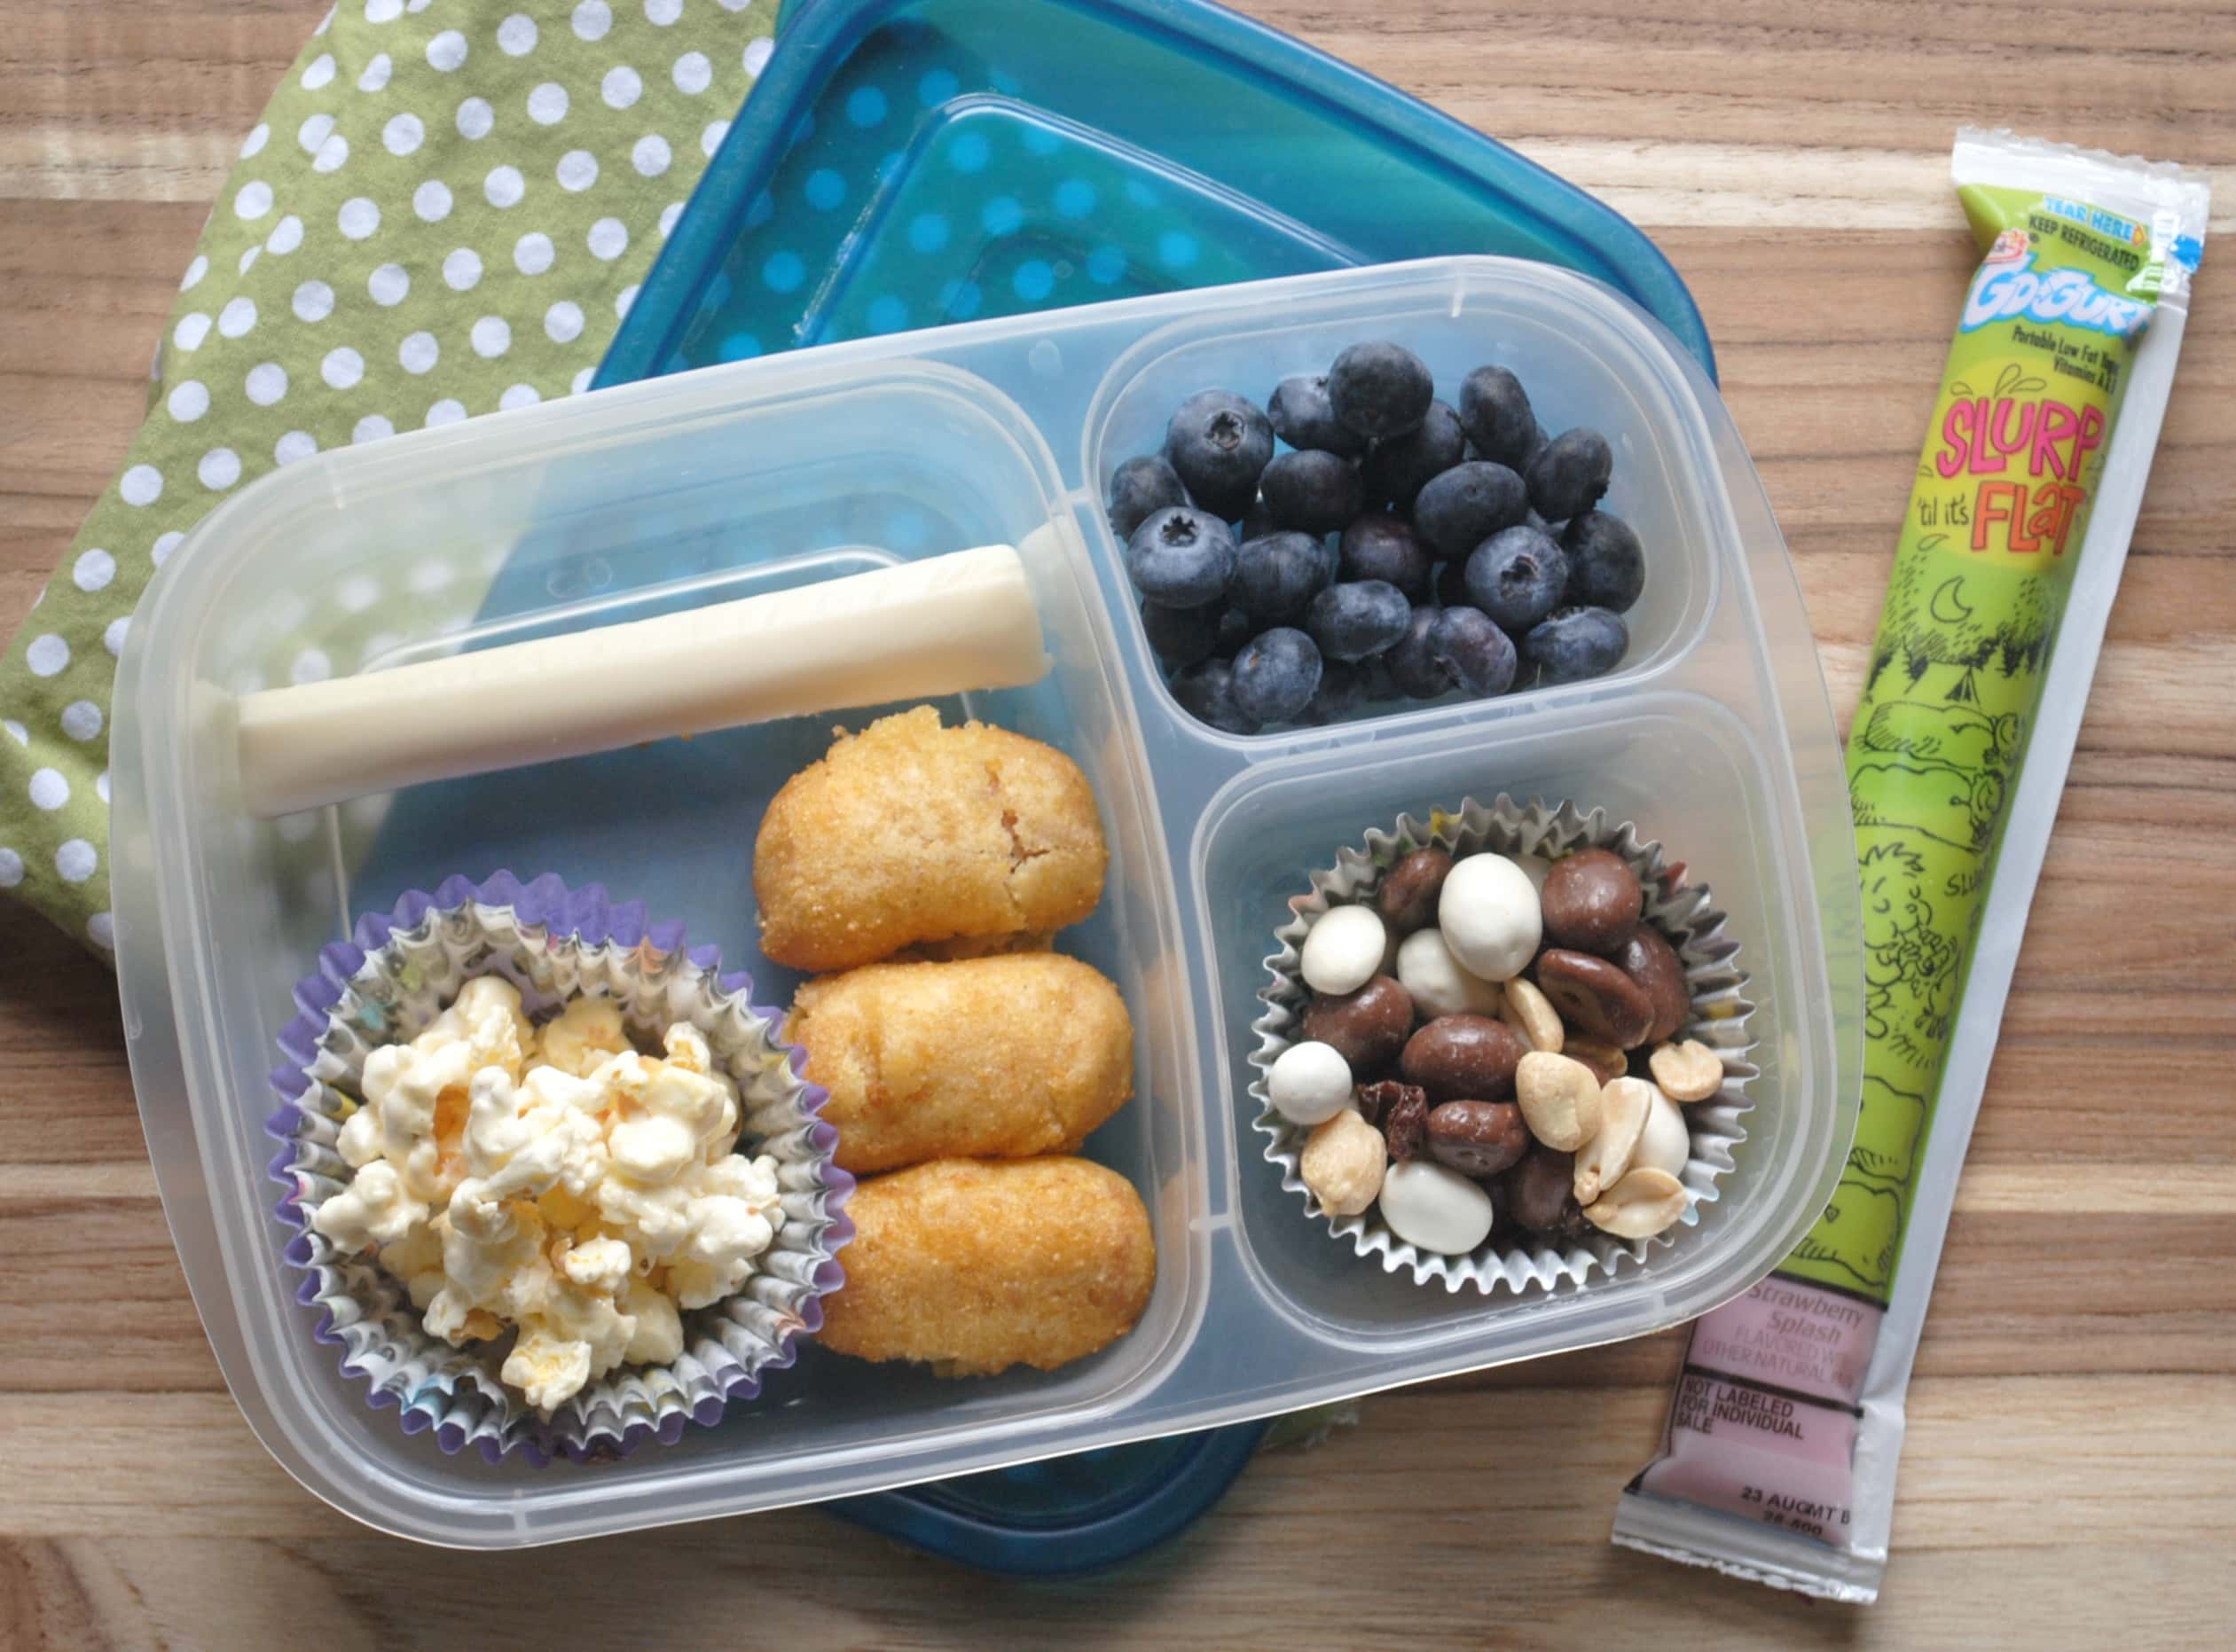 Easy Summer Lunch Ideas Lunchbox idea bite size treats mommy hates cooking lunchbox idea for kids gogurt sponsored sisterspd